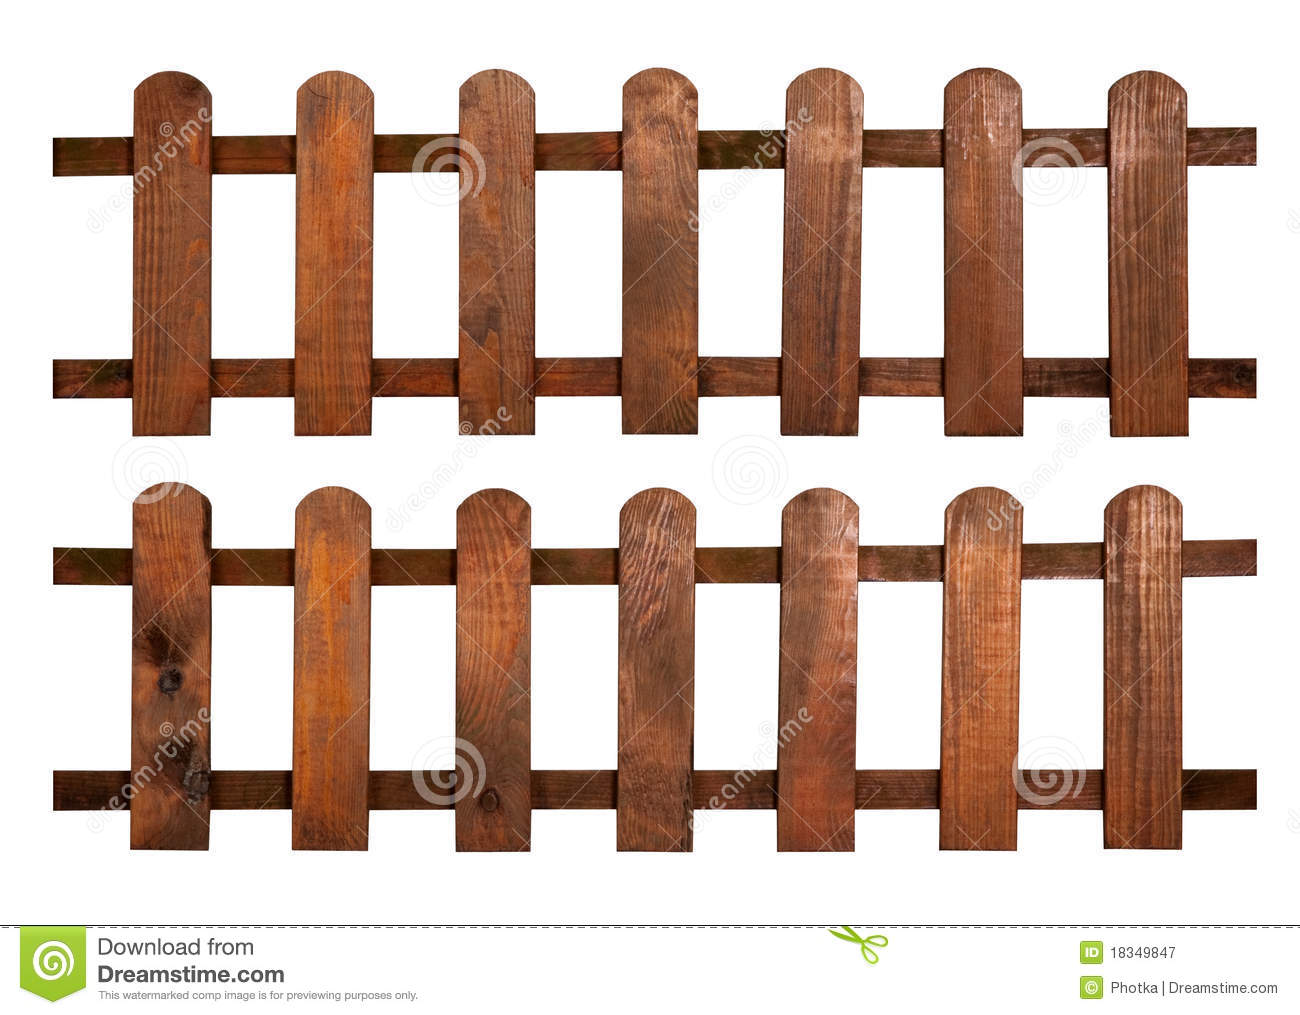 Farm Fence Clip Art Wooden fence isolated on white